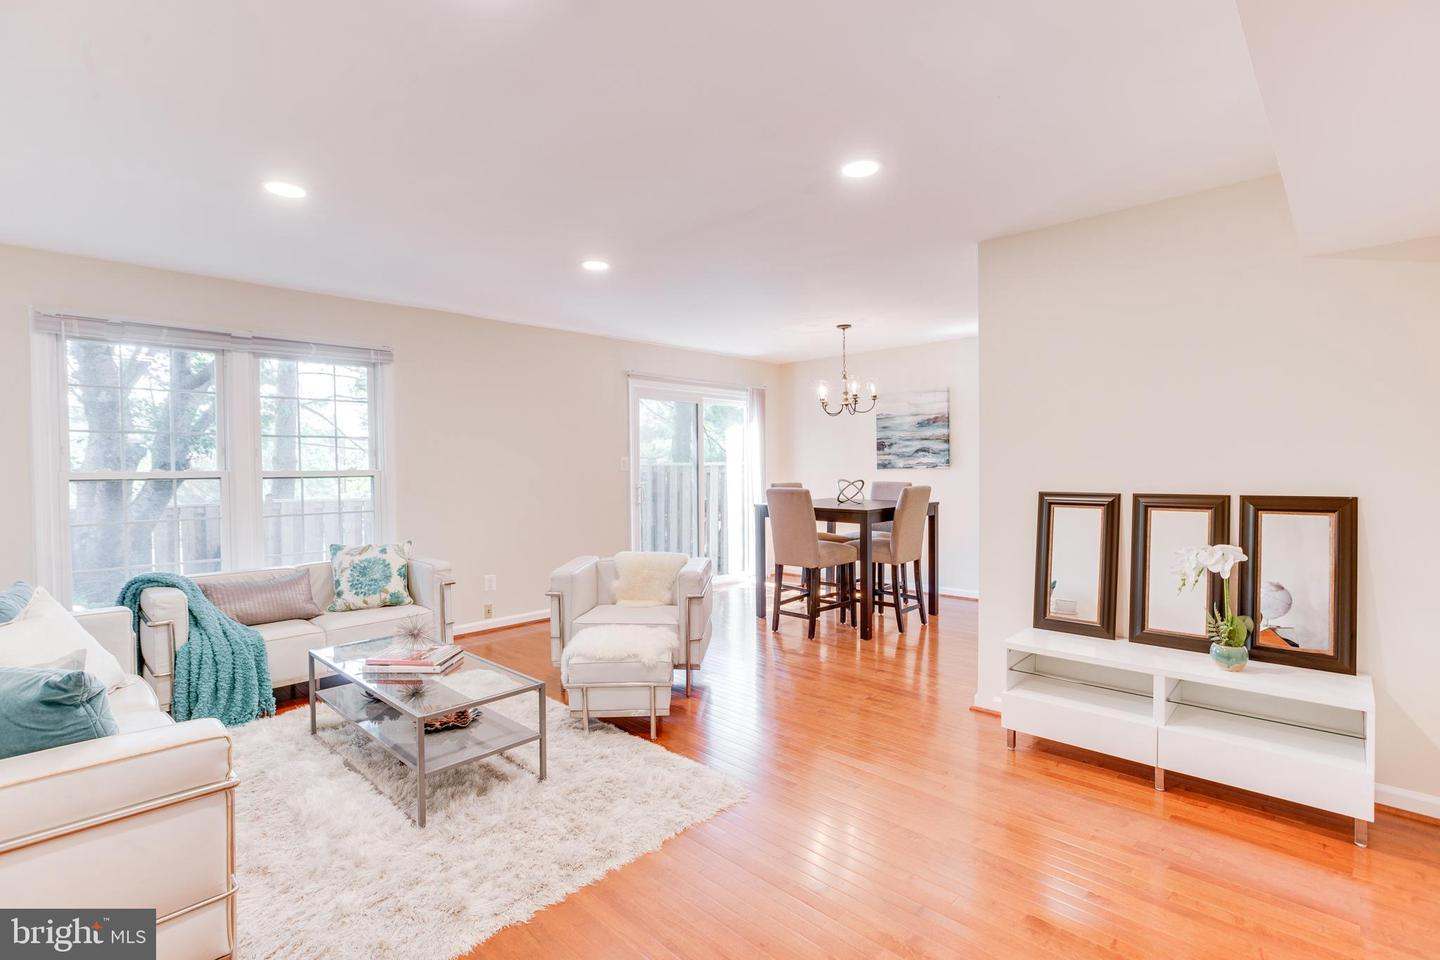 4415 Chase Park Court, Annandale, VA, 22003 - Properties